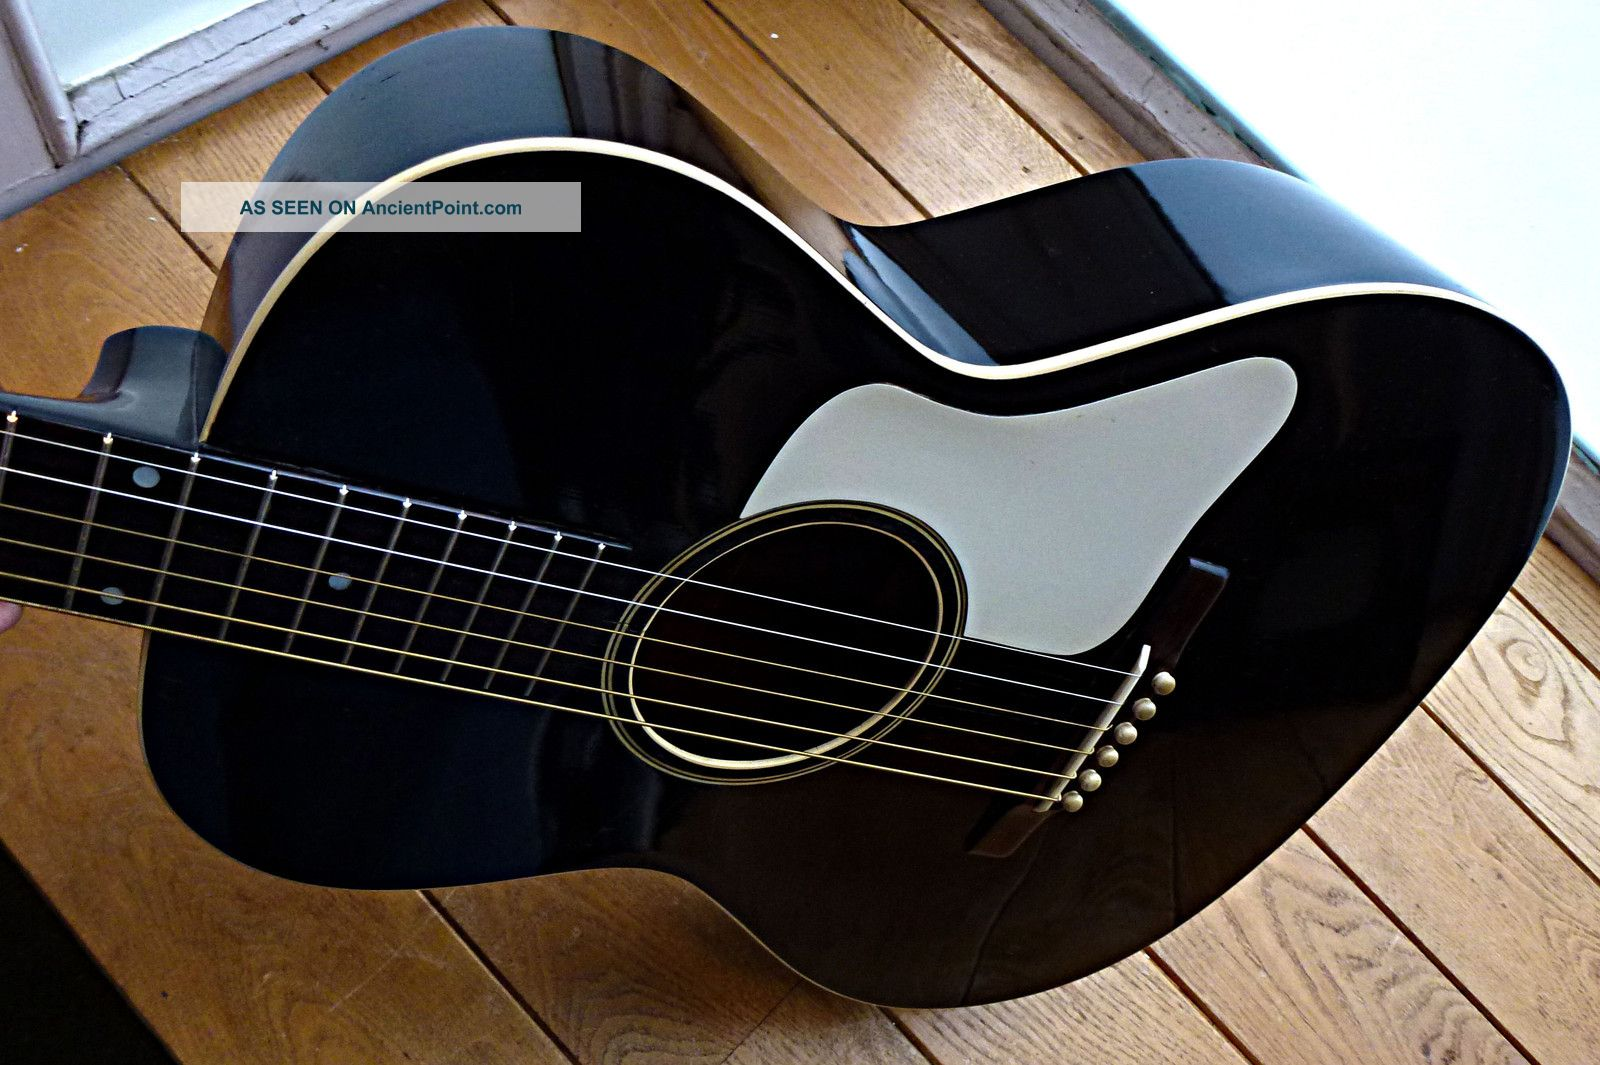 Gibson L - 00 Acoustic Guitar - Vintage 1930 - Black With